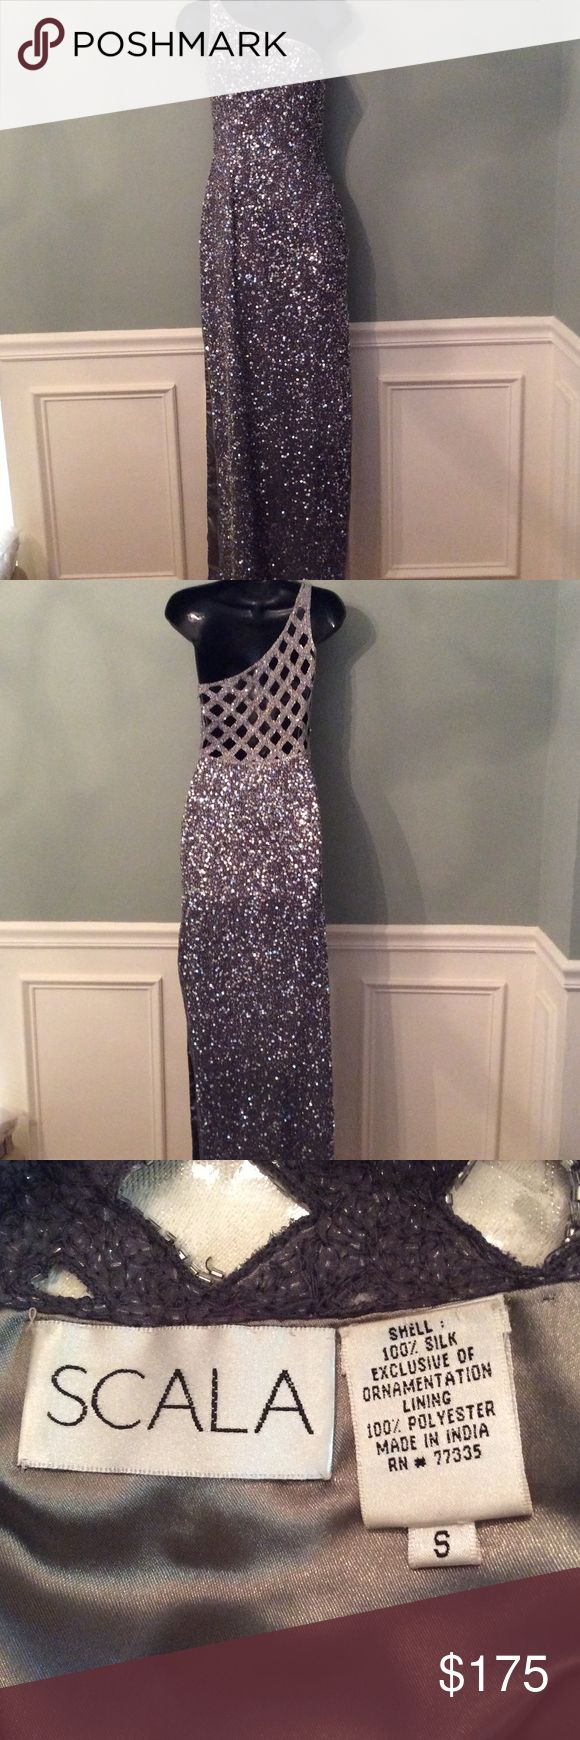 Scala sequin dress in silver Scala silver sequin dress, side zipper with clasp. This dress has 28 inch slits on each side.  One shoulder and gorgeous diamond patterned back.  Built in bra. Missing a few sequins here and there.  Length is 48 inches and the waist is 13 inches across.  Great for a prom or to attend a wedding. This dress will make you look like a star! Scala Dresses One Shoulder